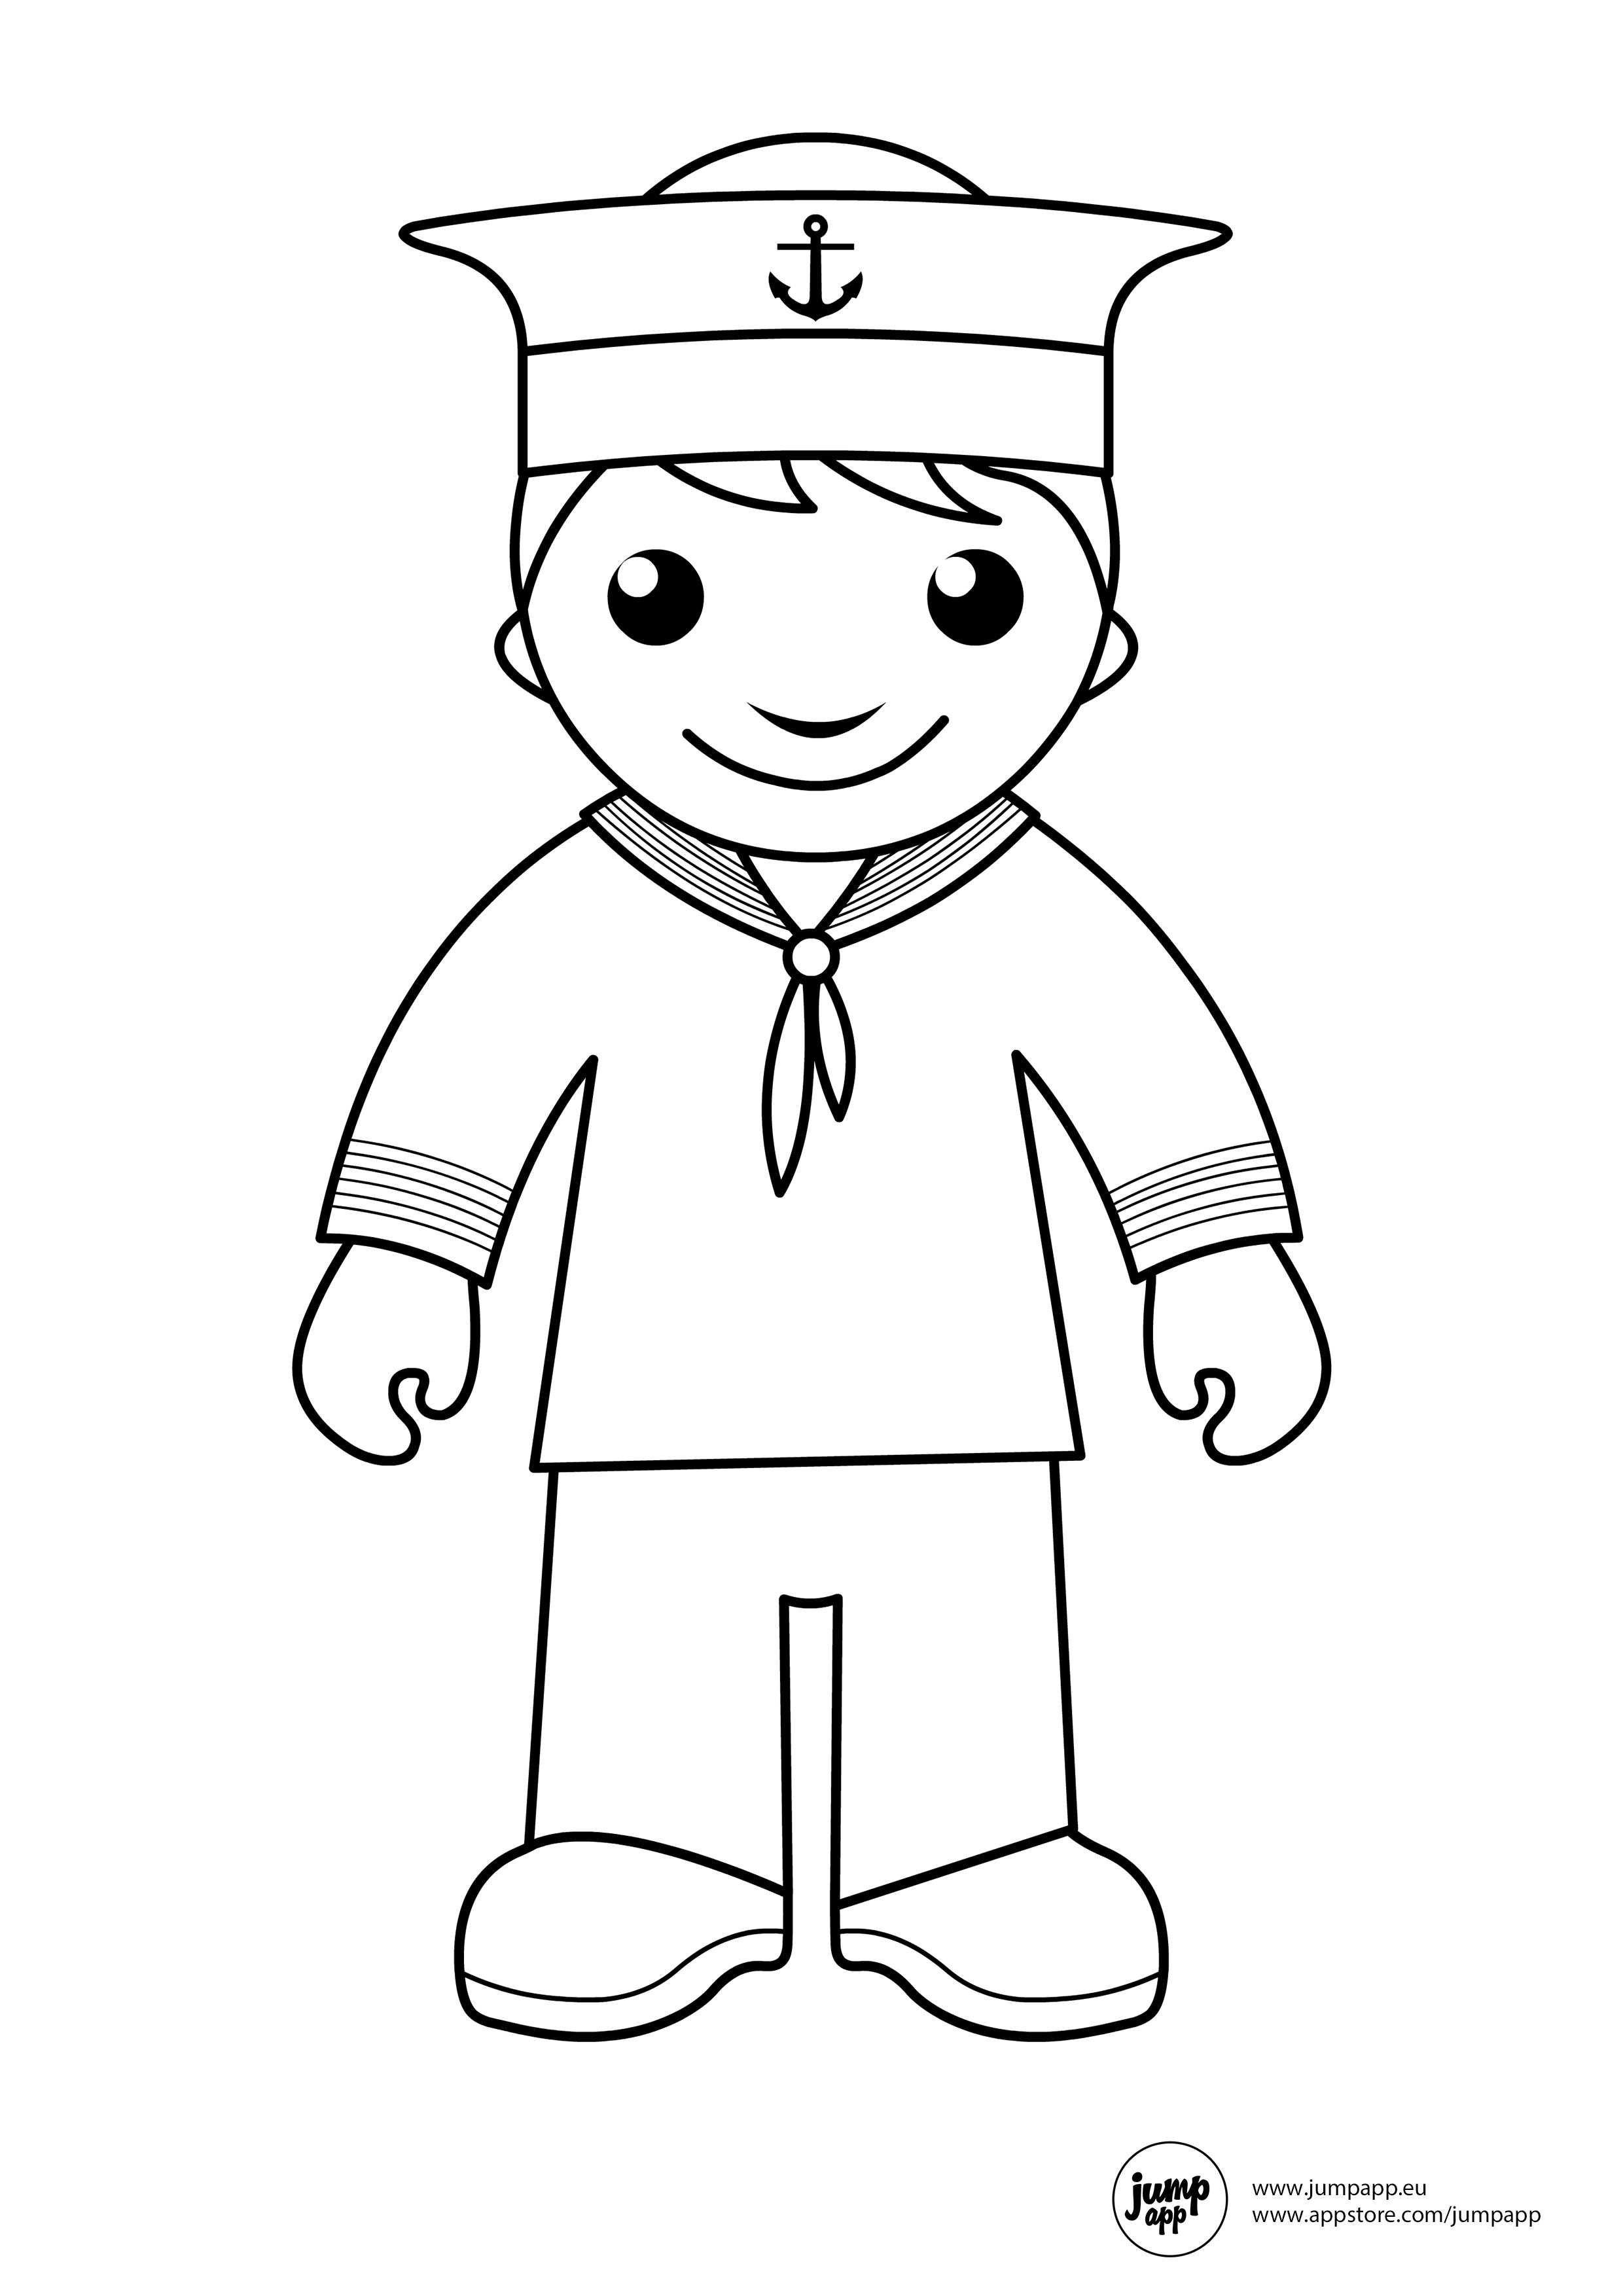 sailor printable coloring pages pinterest sailor community